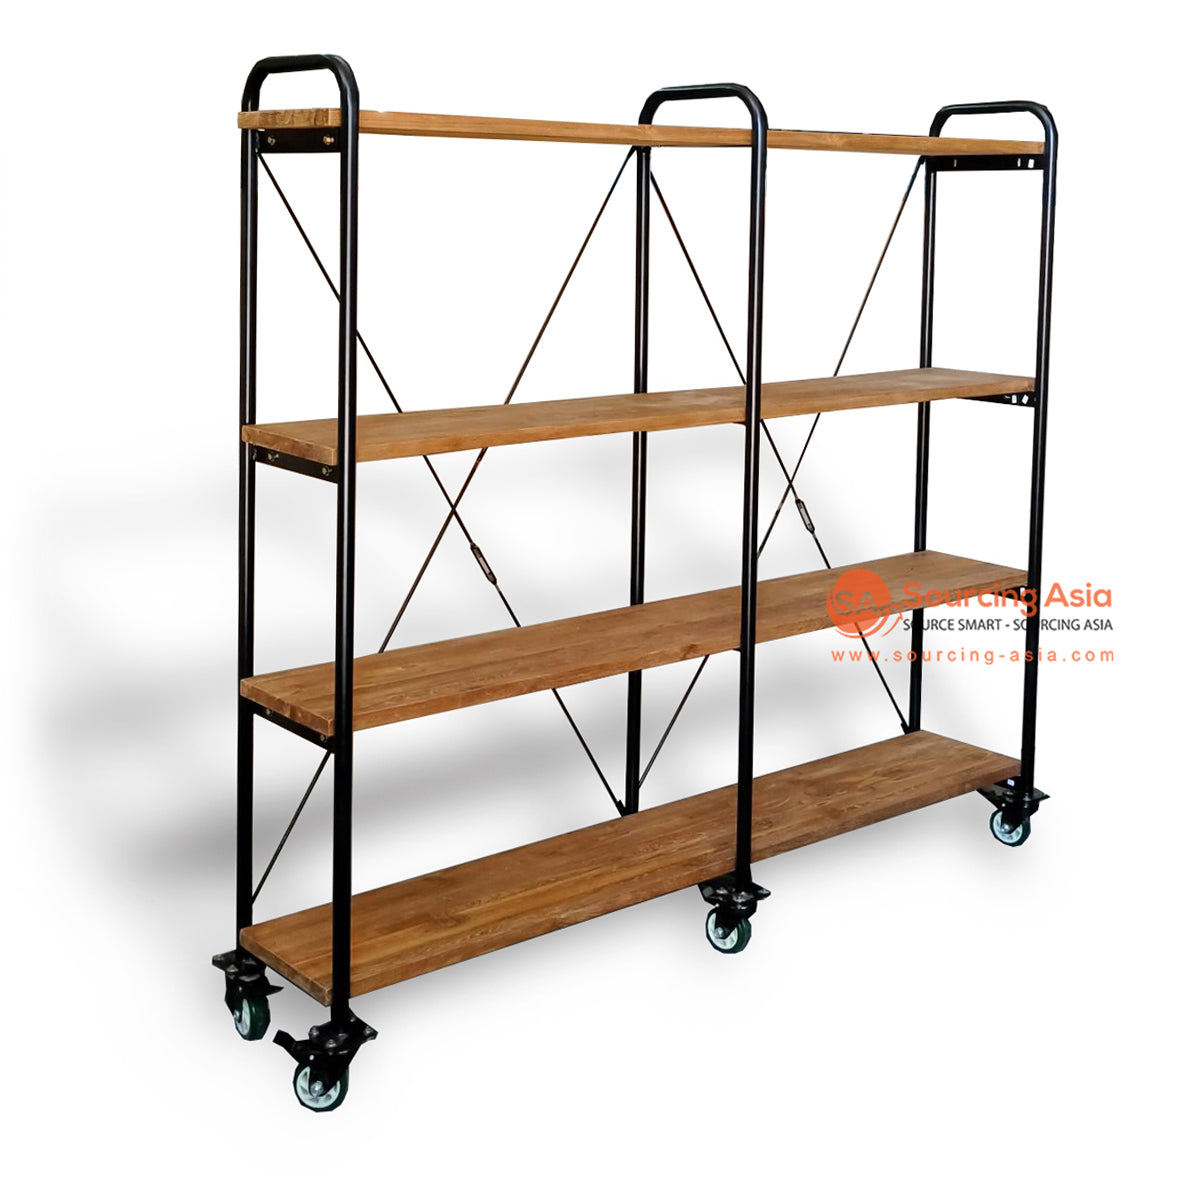 ECL258 METAL AND WOOD STORAGE SHELVING